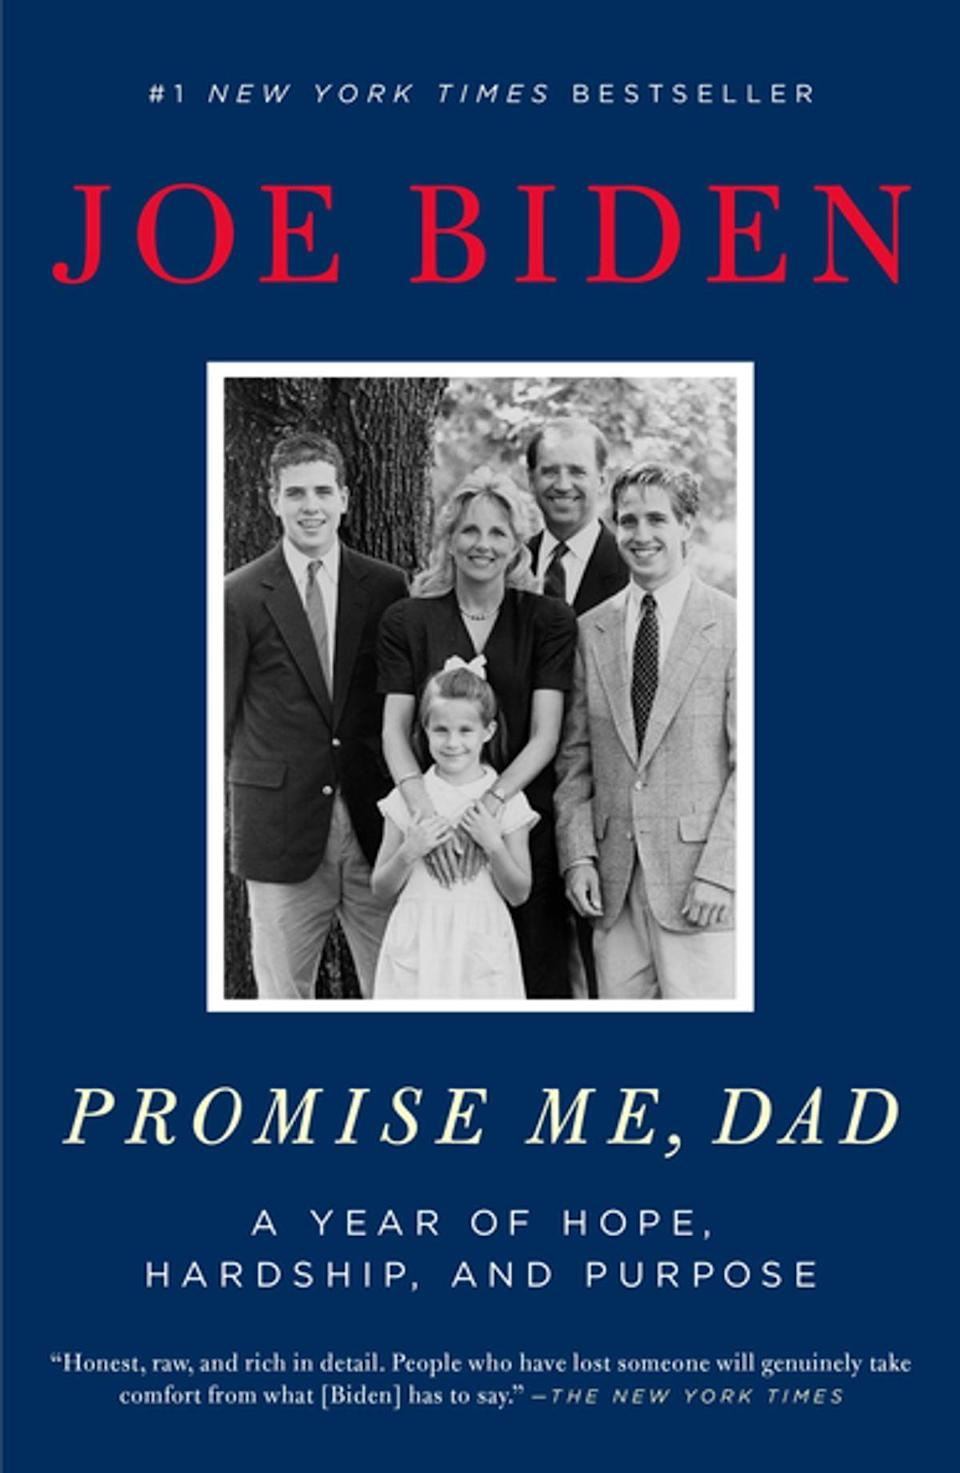 """<p>Imagine going through one of the hardest yet most momentous years of your life all at the same time. <span><strong>Promise Me, Dad: A Year of Hope, Hardship, and Purpose</strong></span> ($15) by <a class=""""link rapid-noclick-resp"""" href=""""https://www.popsugar.com/Joe-Biden"""" rel=""""nofollow noopener"""" target=""""_blank"""" data-ylk=""""slk:Joe Biden"""">Joe Biden</a> is an ode to his elder son, Beau, and the promise he made to his son. From career to family, Biden pens it all in this moving book about a year that changed his life. </p>"""